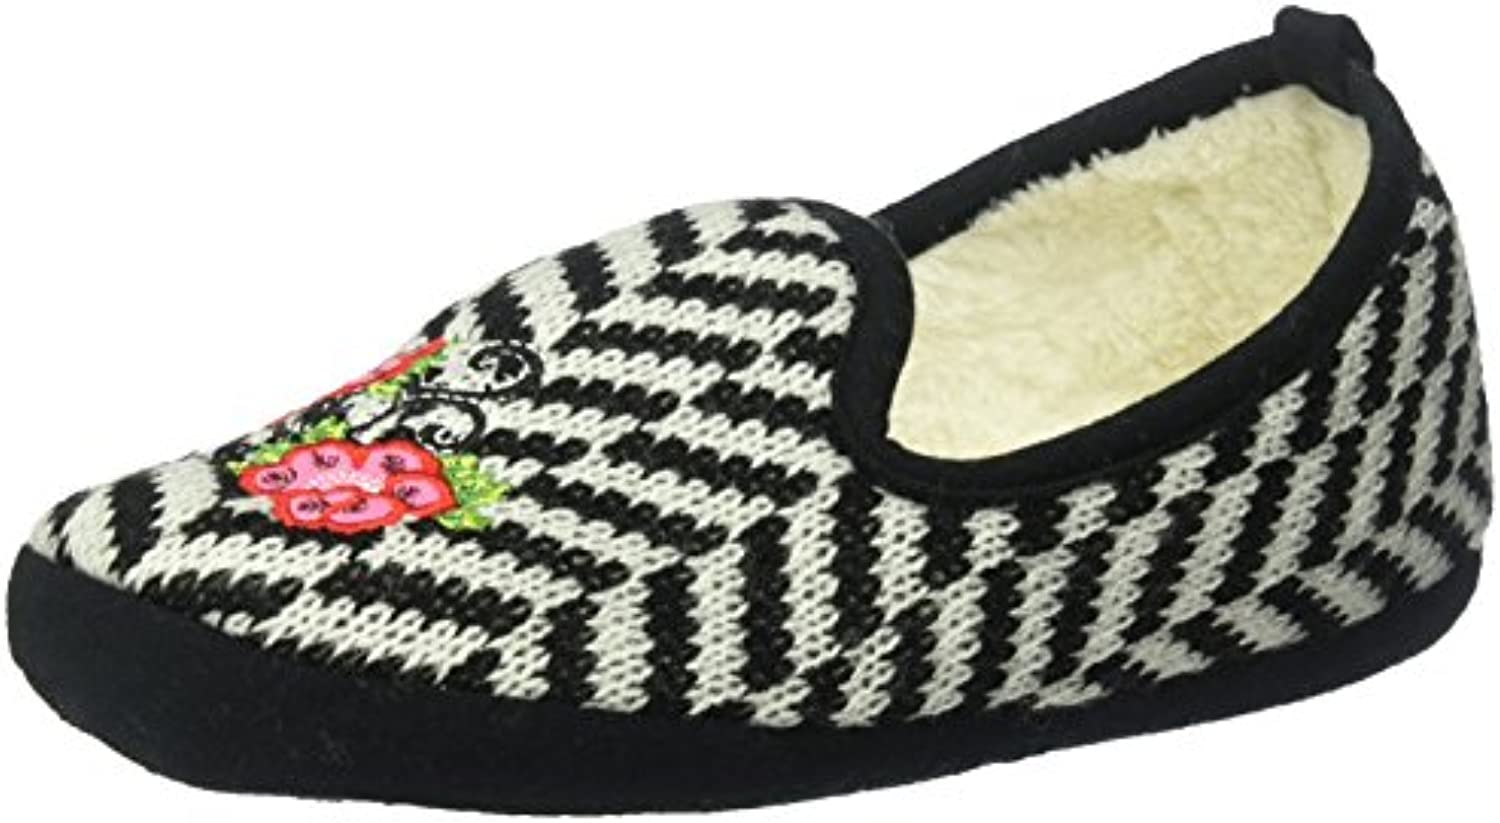 K-Bell Slippers-Rose Embroidery Black - Small/Medium